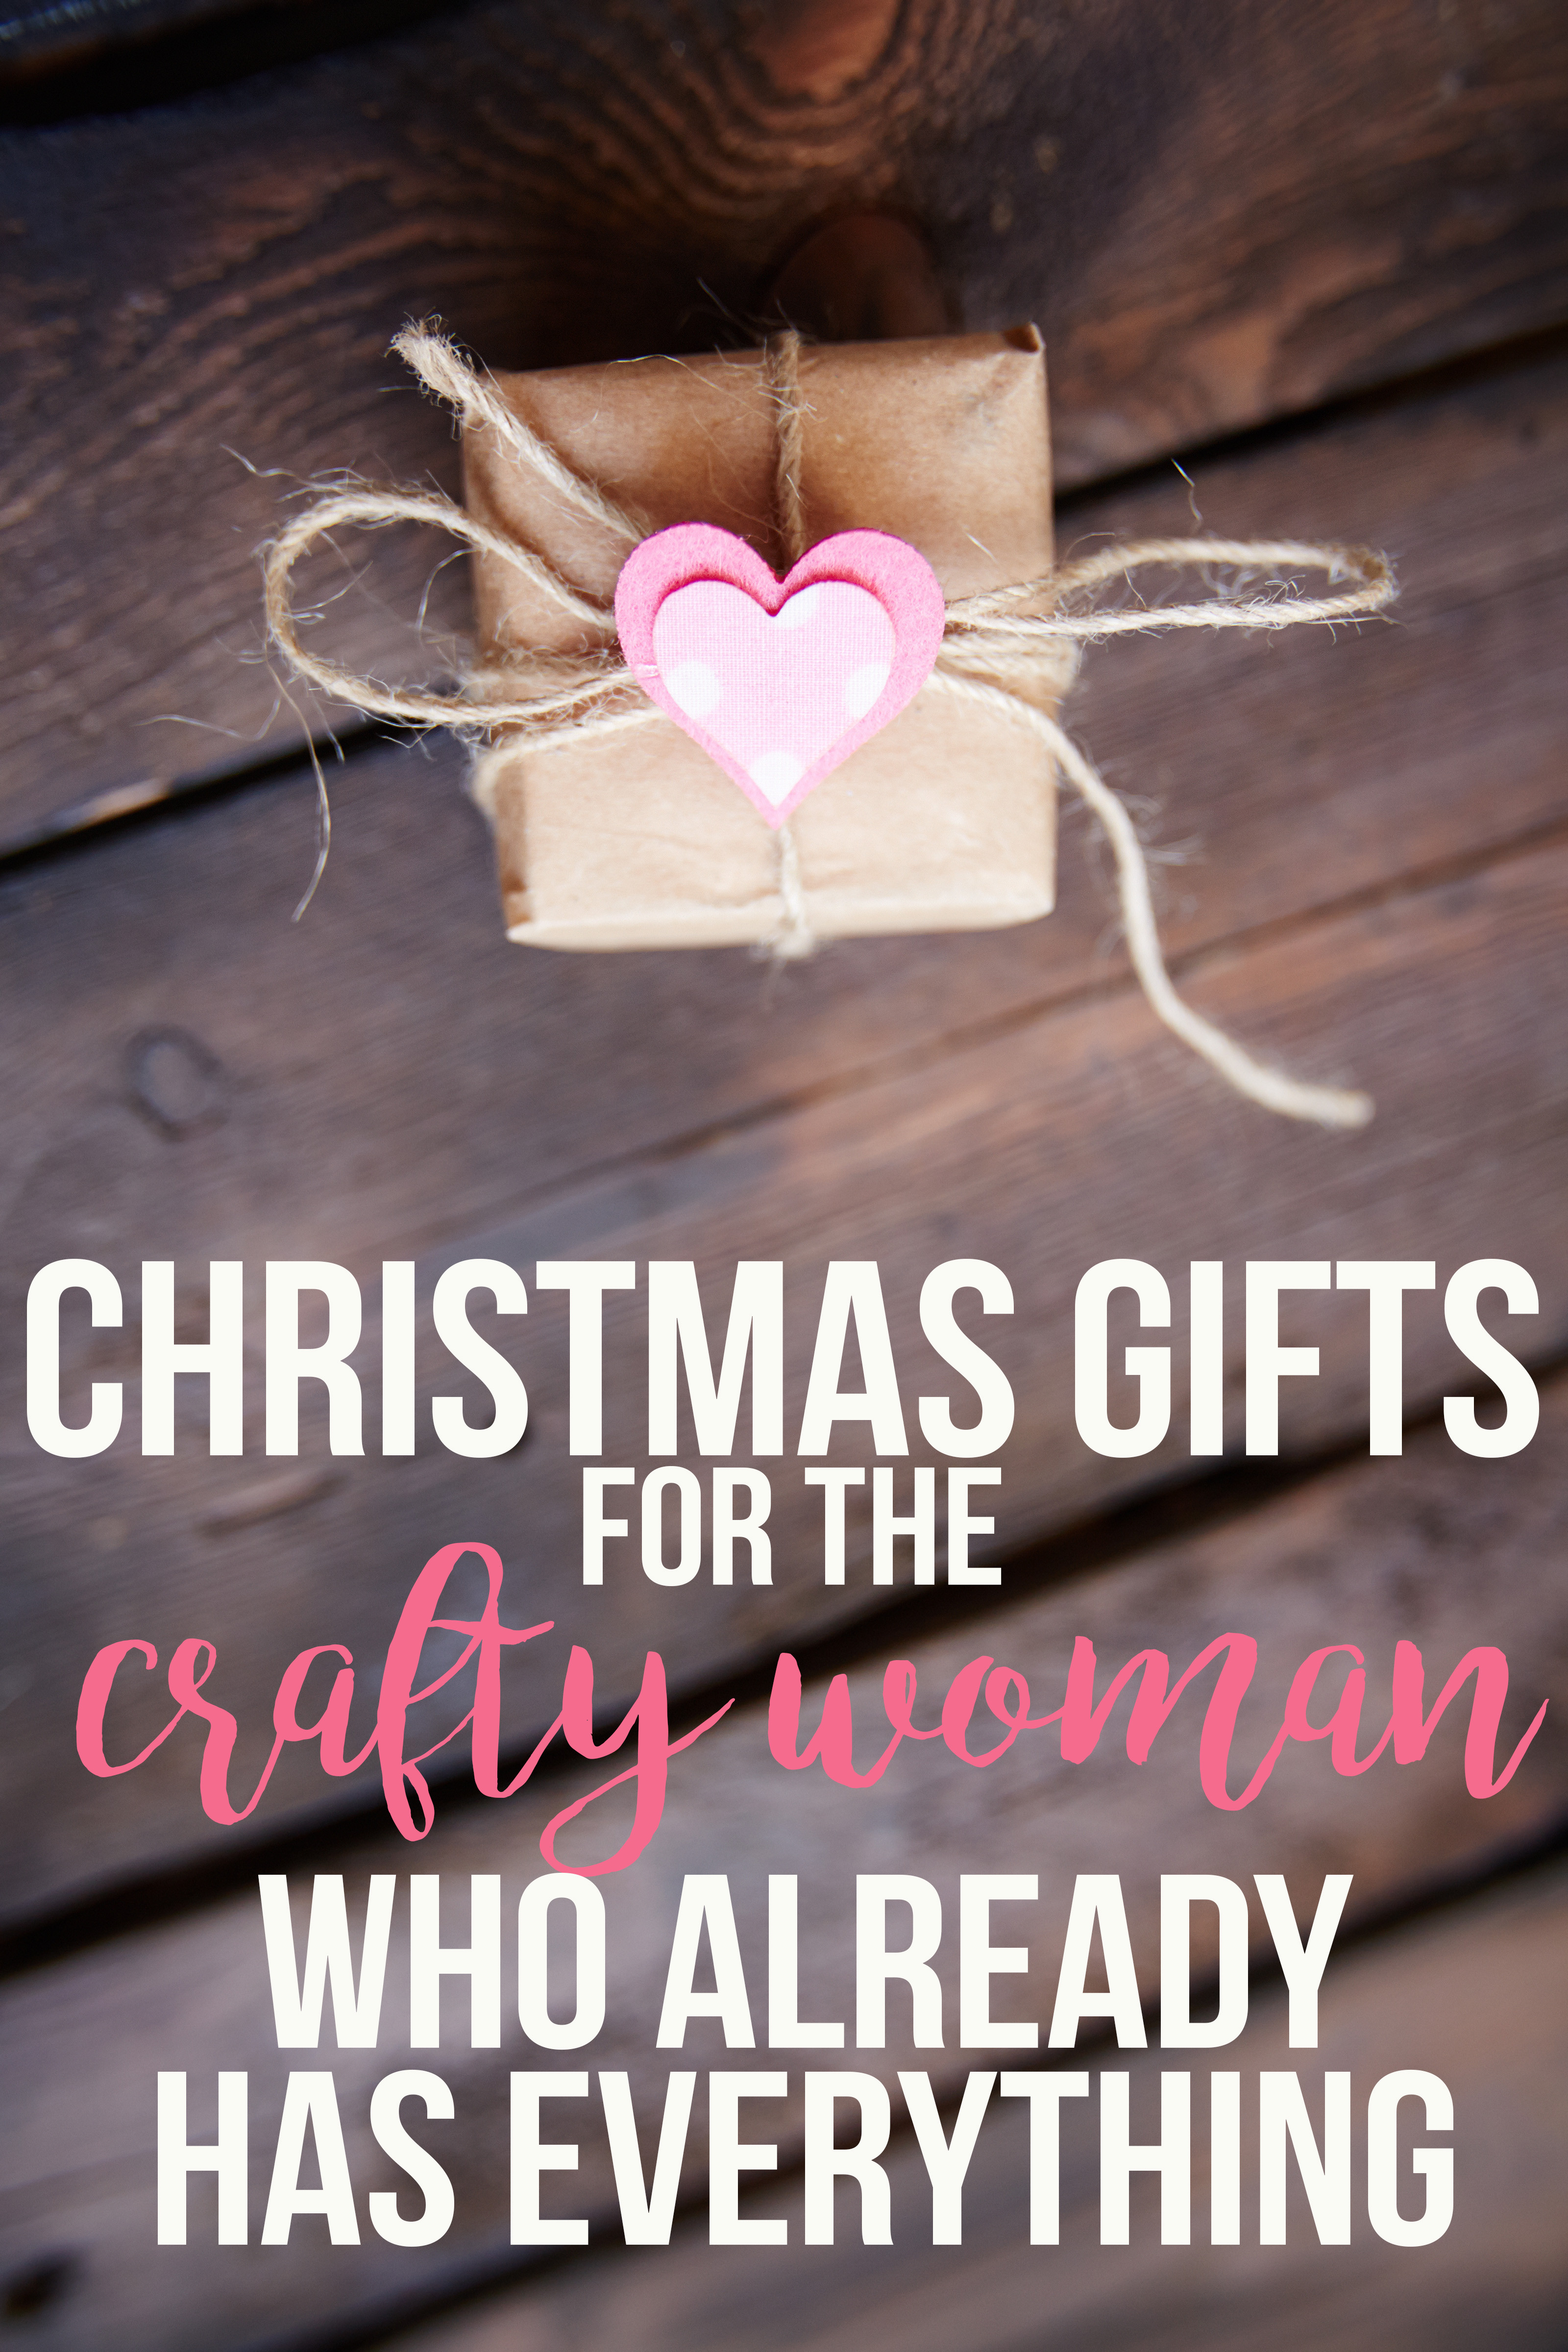 Christmas Gift Ideas For Woman Who Has Everything  Christmas Gifts For The Crafty Woman Who Has Everything